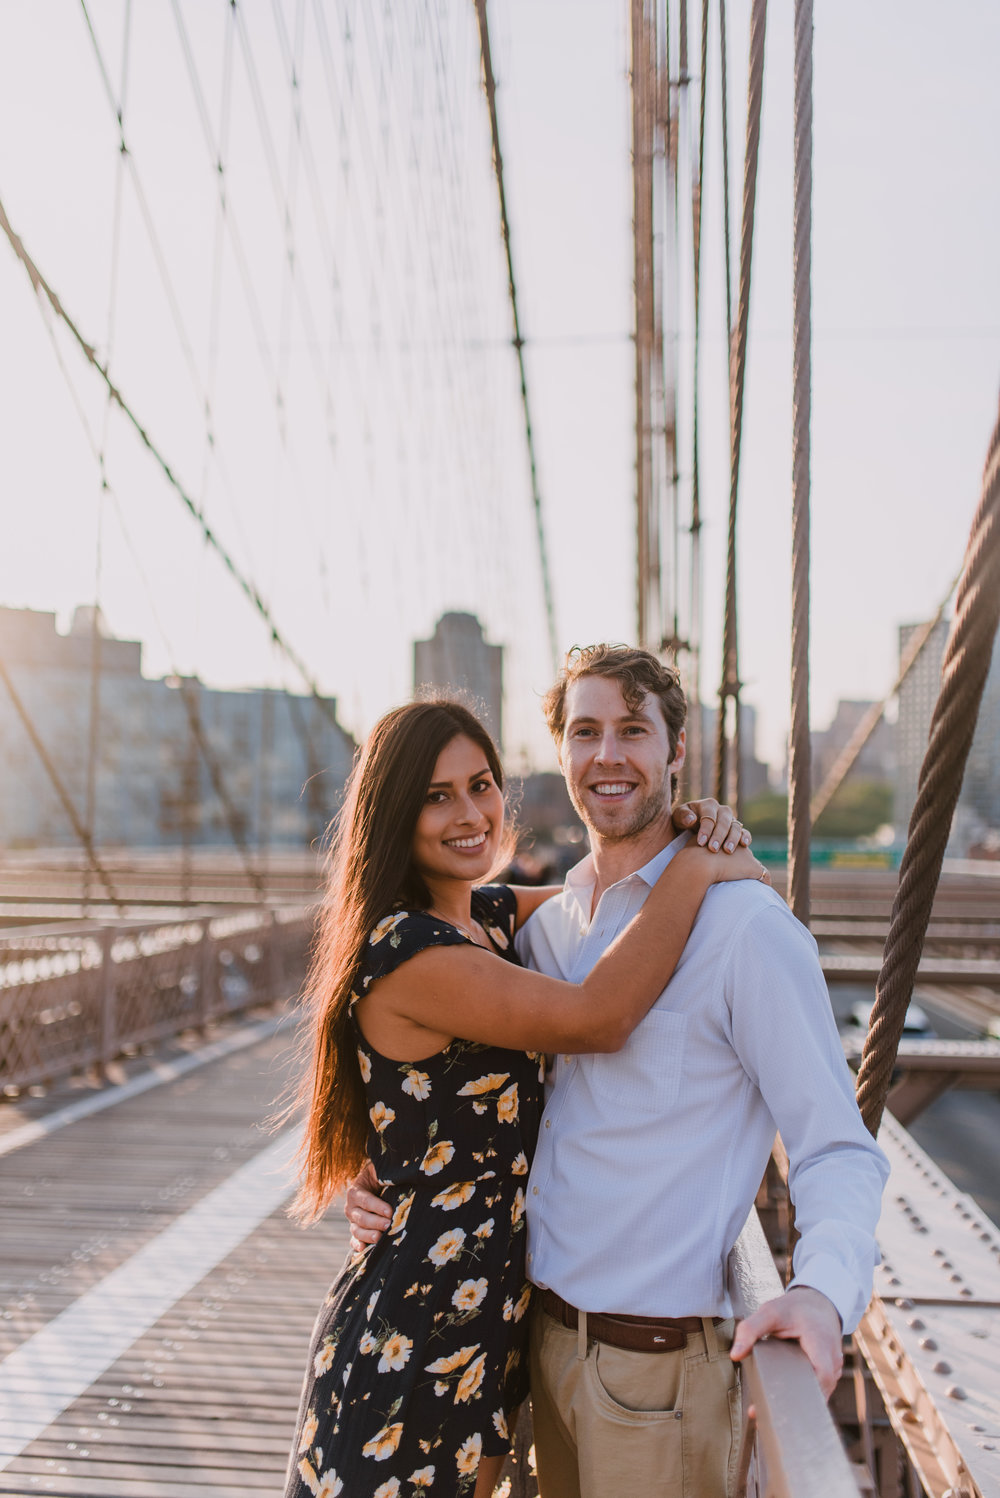 brooklyn bridge engagement shoot, couple shoot nyc, nyc wedding photographer, destination wedding photographer, documentary wedding photographer in nyc (10).jpg